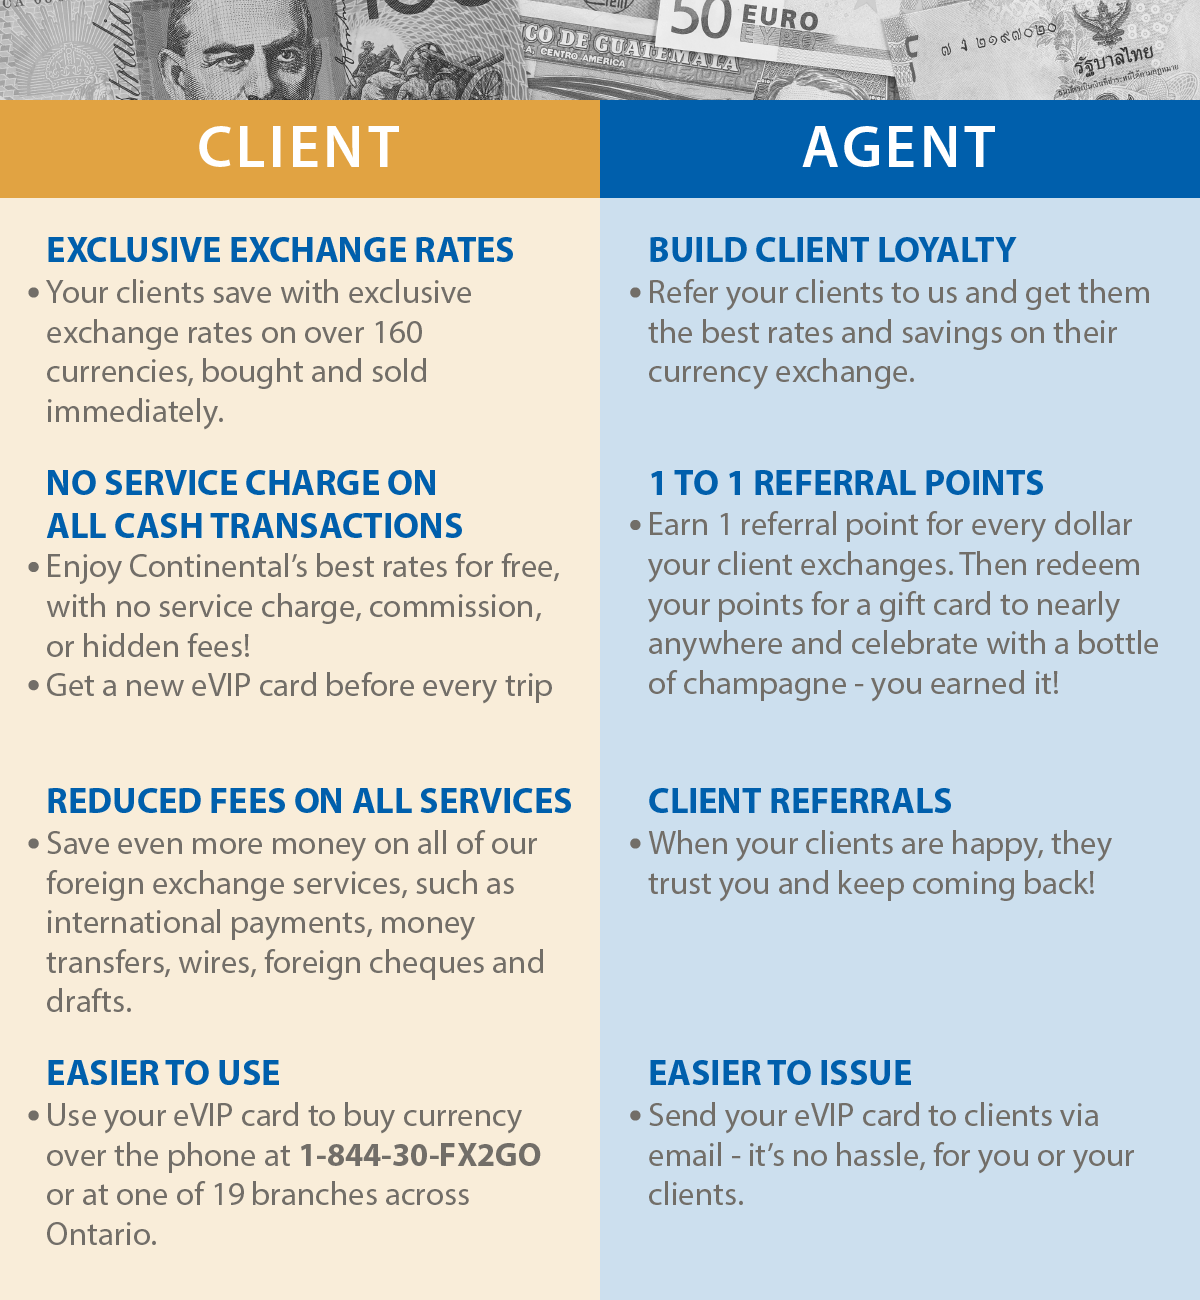 Travel Agent E-VIP card Continental Currency Exchange better exchange rates infographic chart with benefits